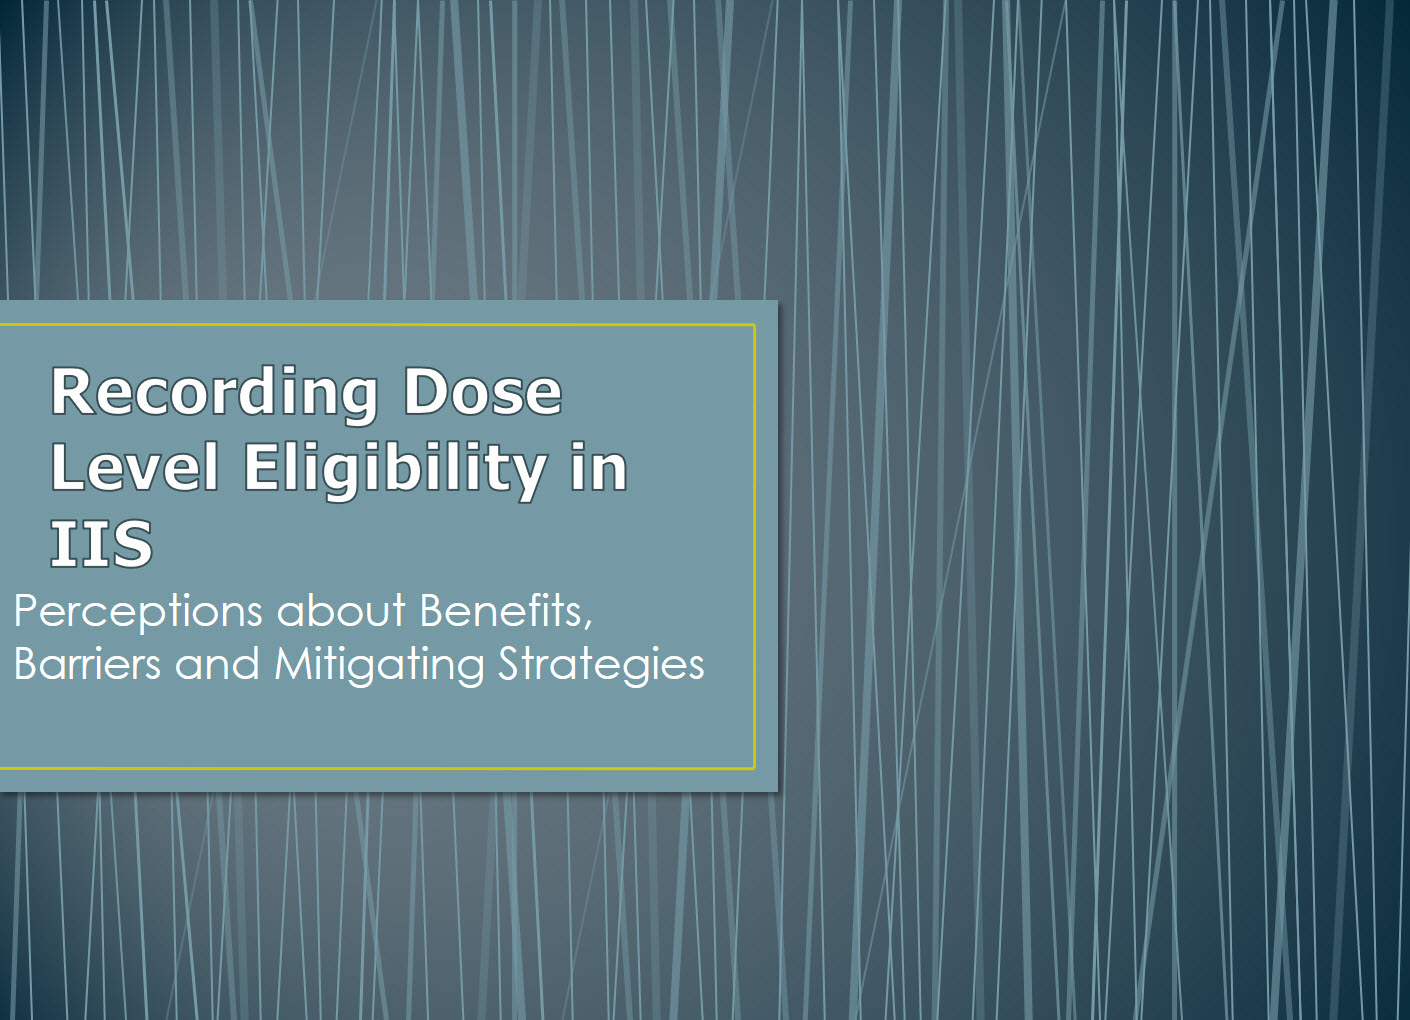 Capturing Dose Level Eligibility in an IIS